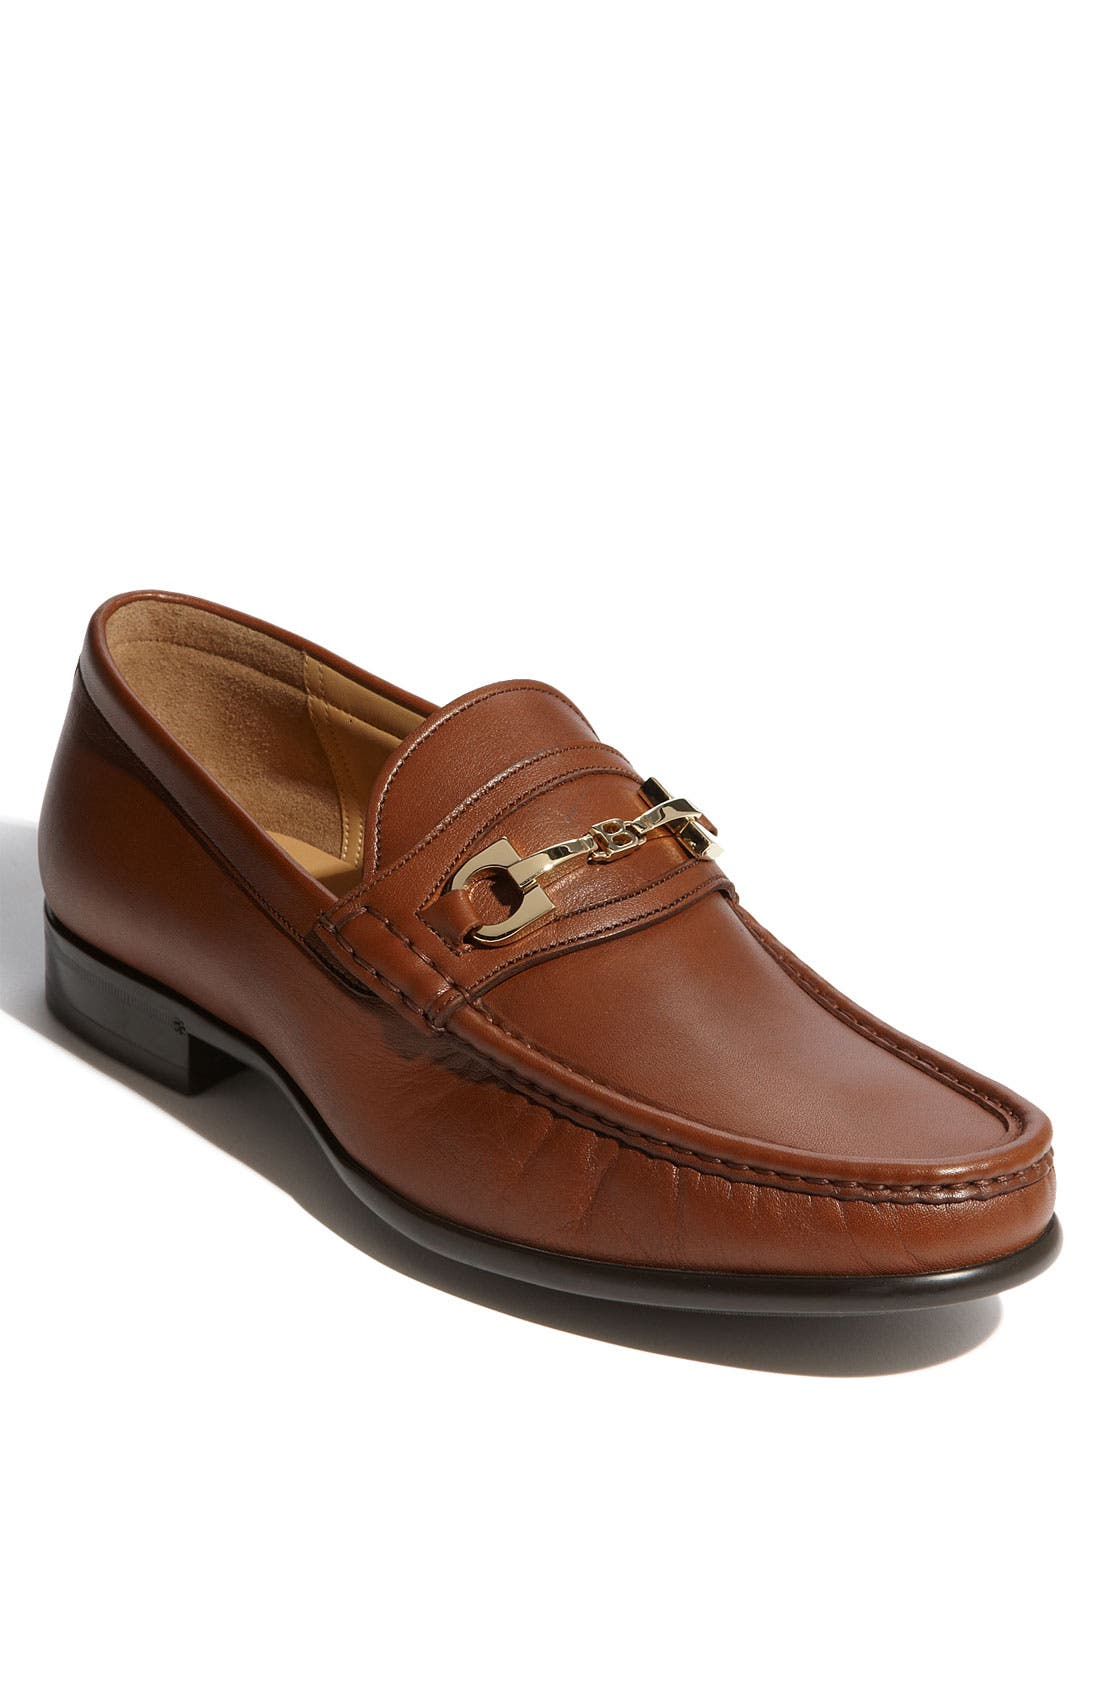 Main Image - Bally 'Corman' Loafer